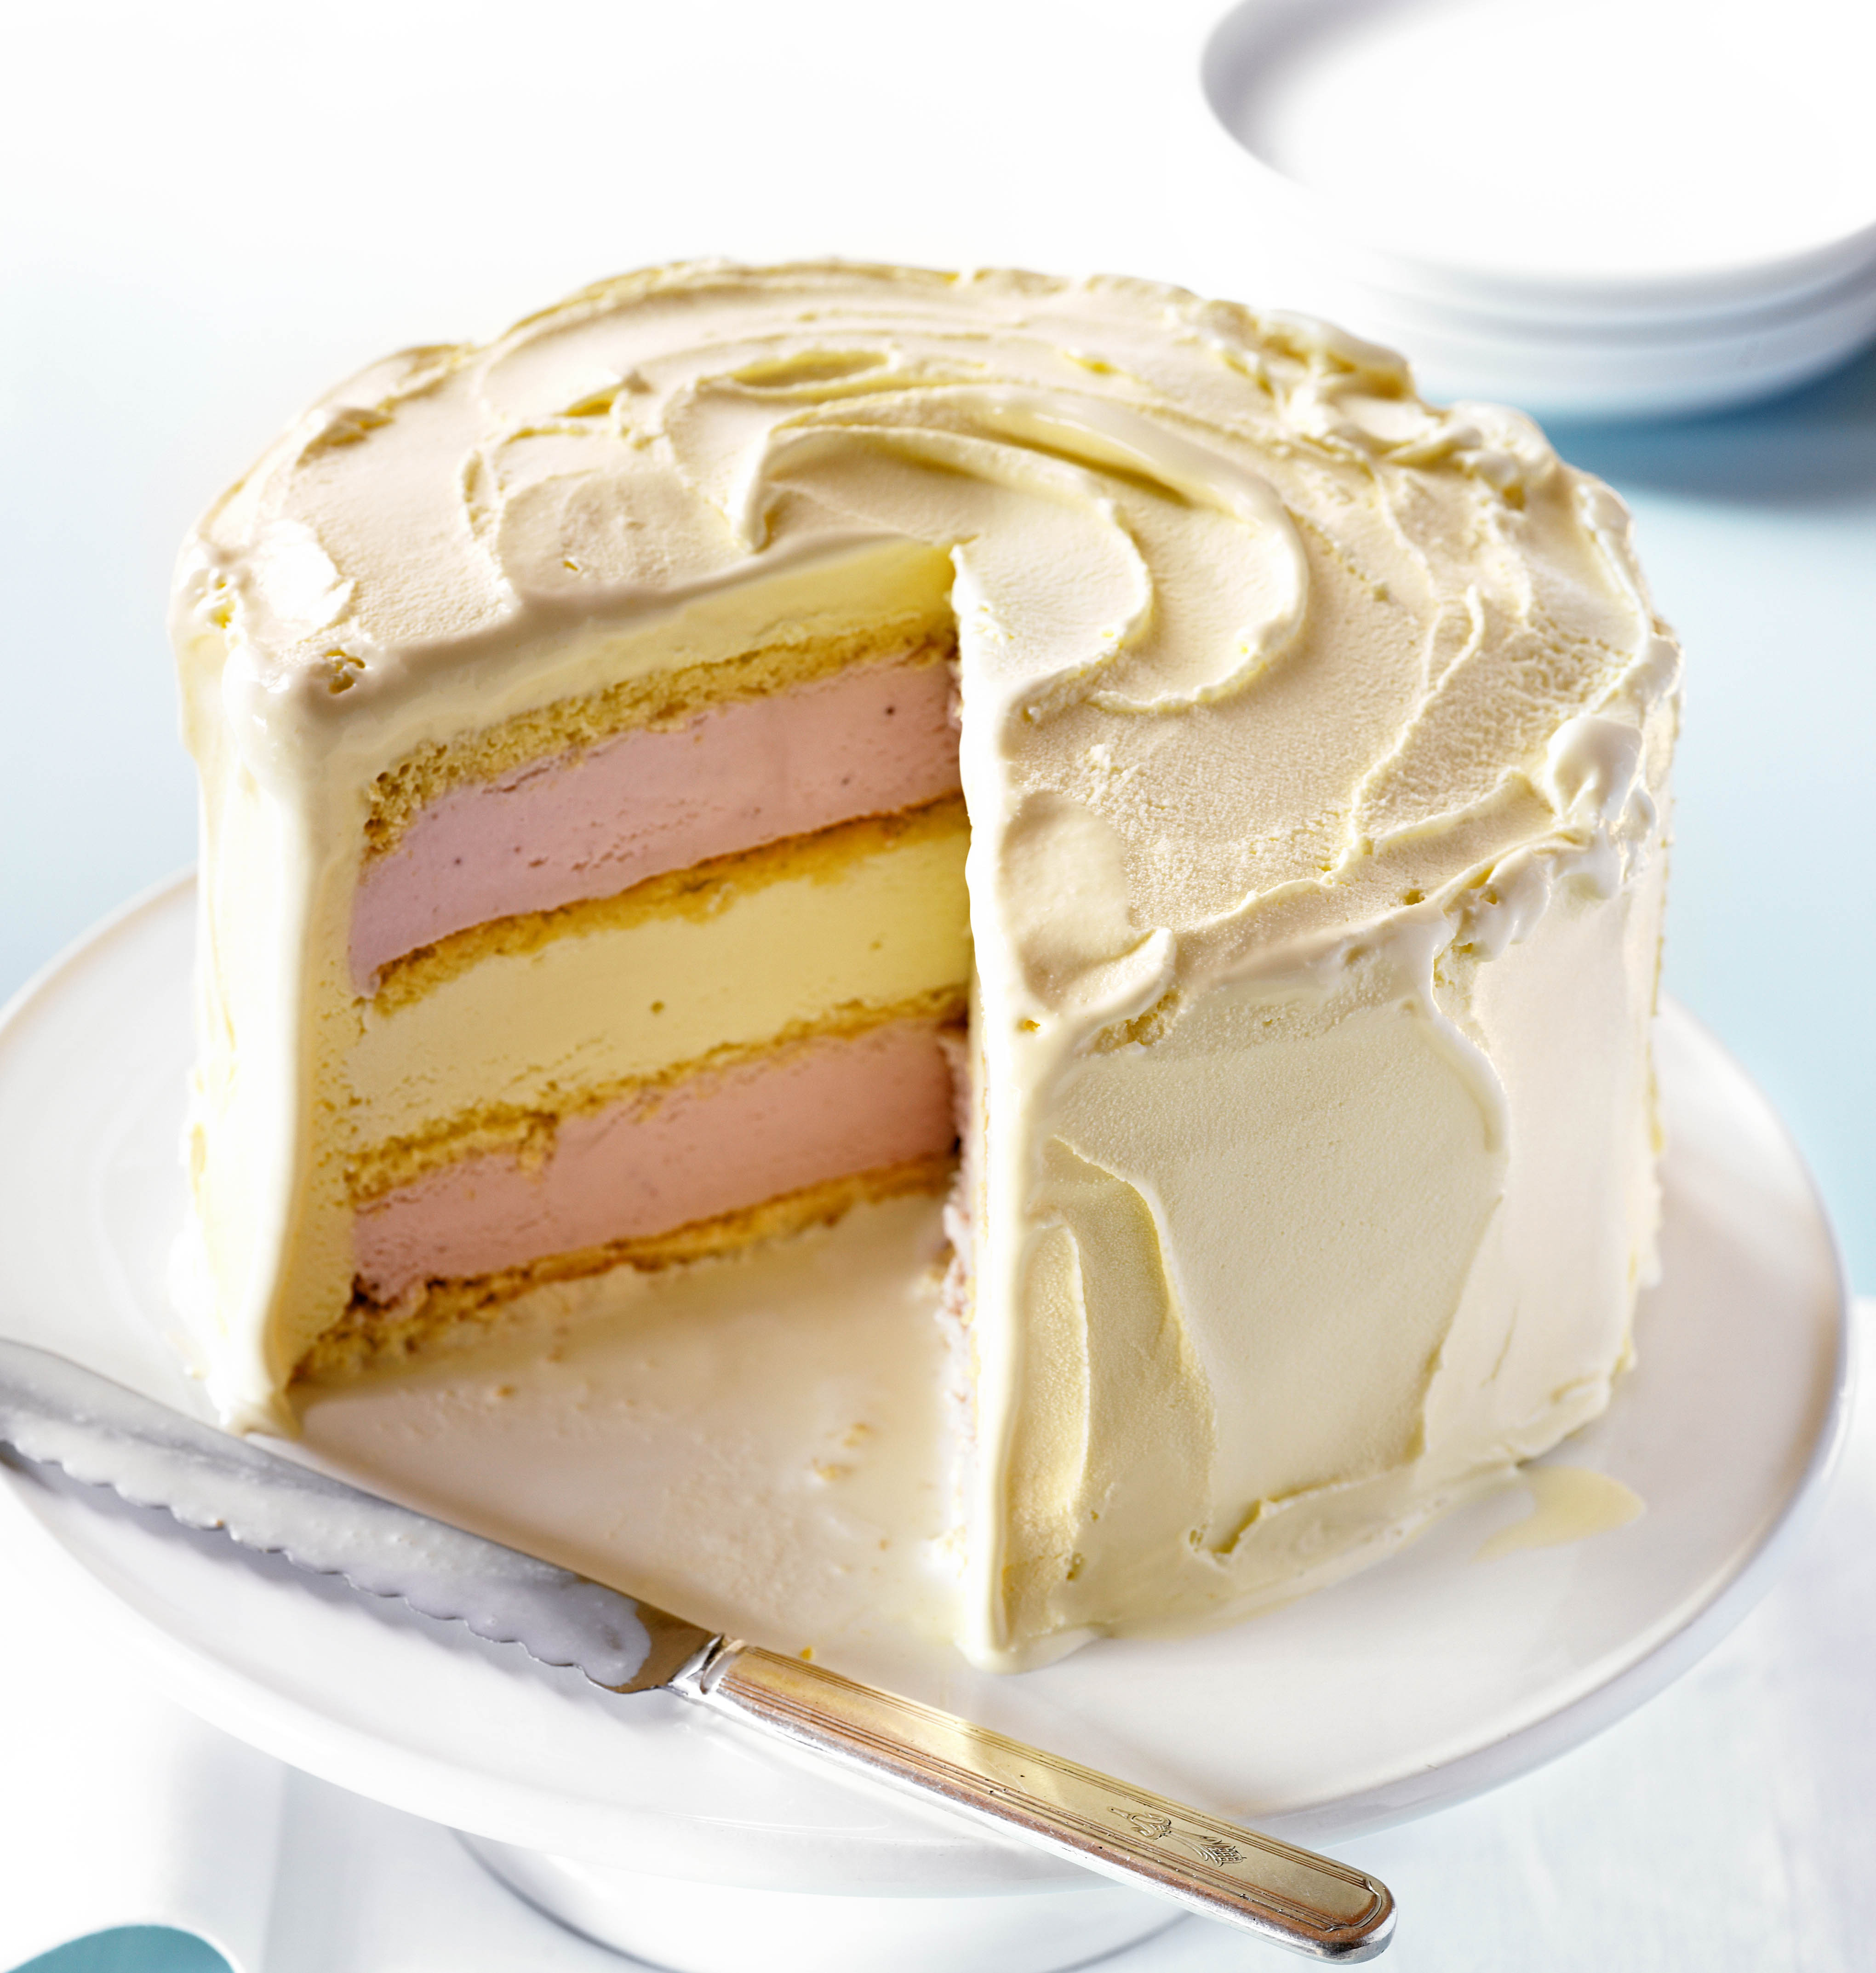 Cake Recipes From Scotland